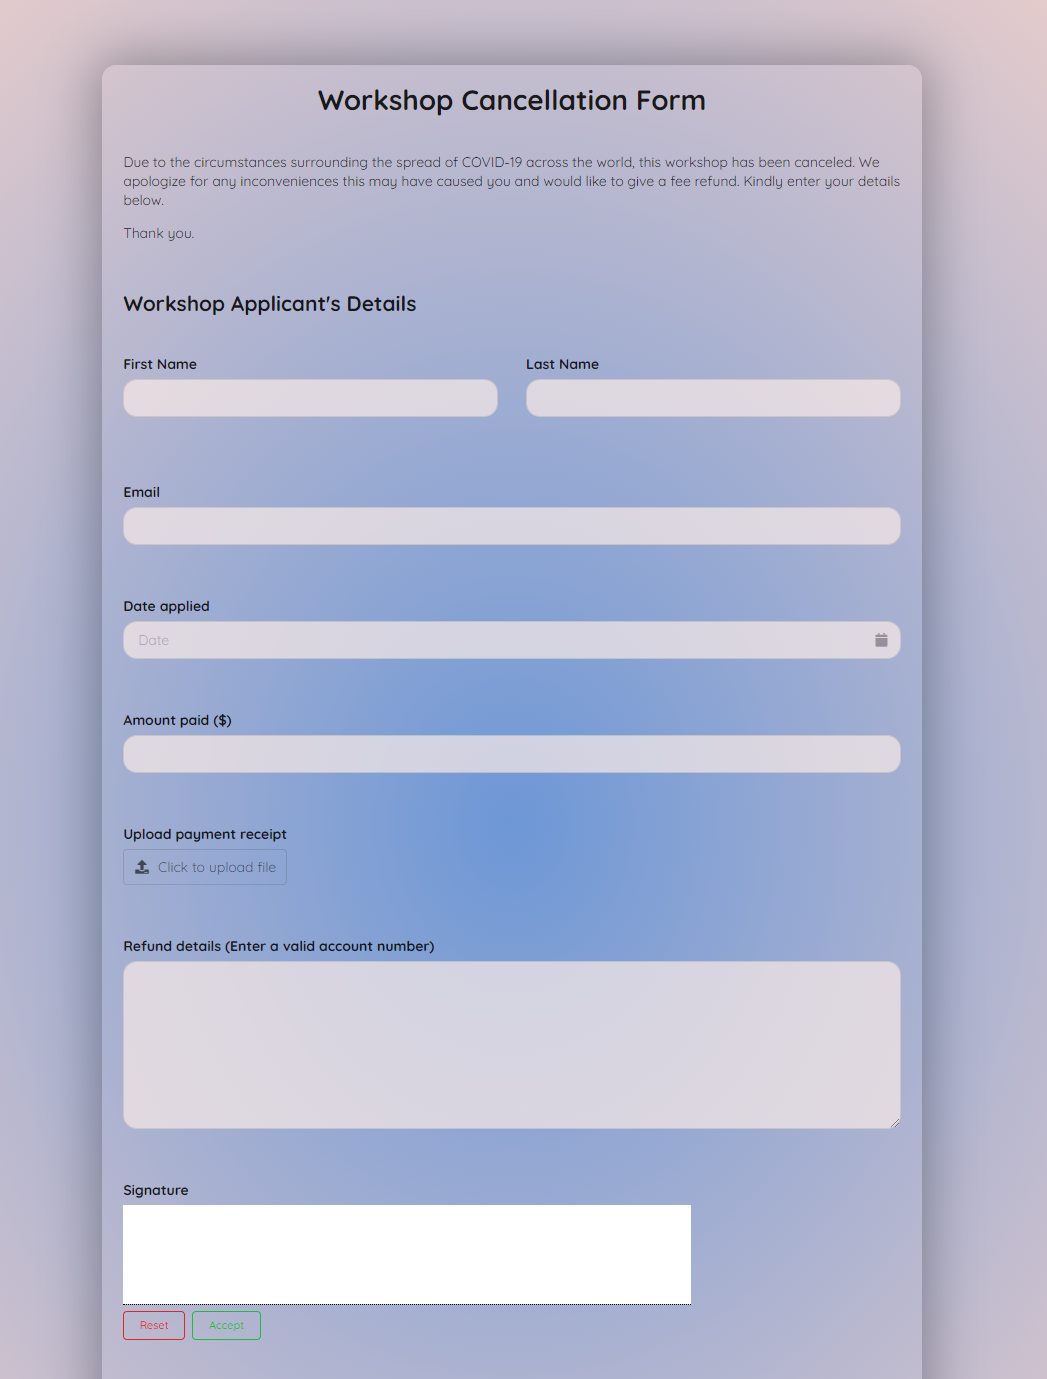 Workshop Cancellation Form Template template